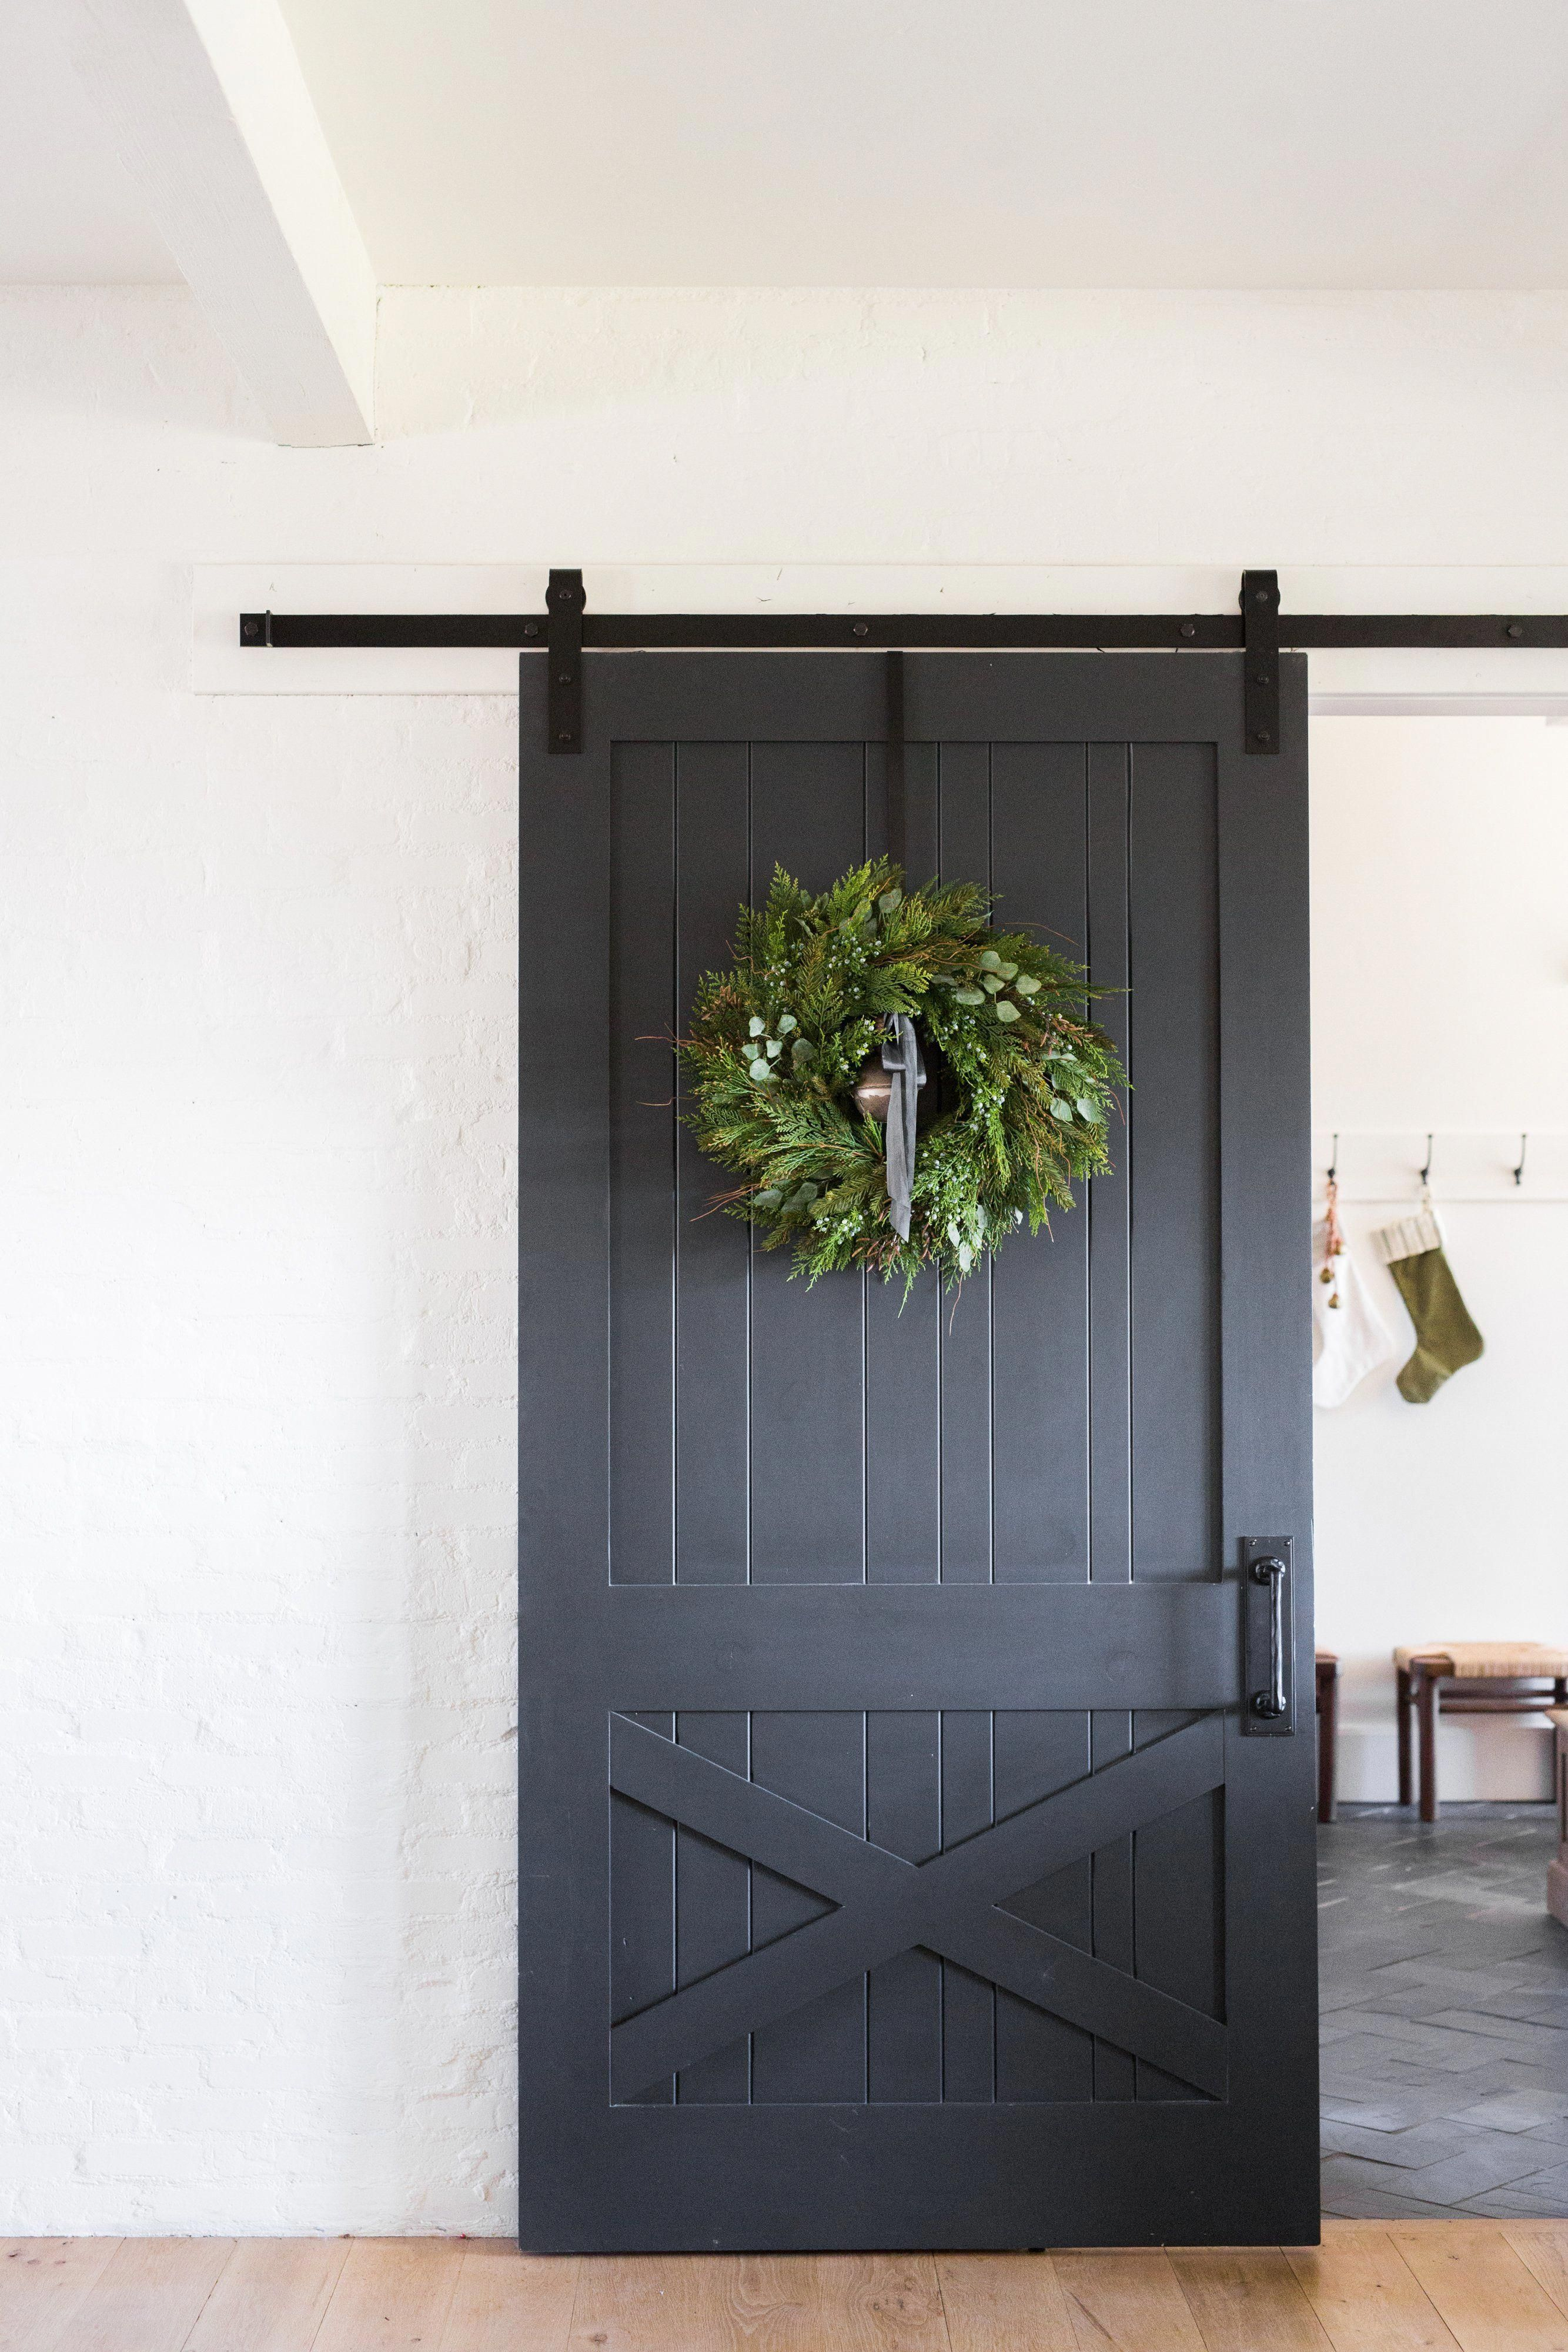 Double Sliding Doors Barn Slide Door Small Sliding Doors Interior 20191012 Barn Style Sliding Doors Farmhouse Doors Barn Doors Sliding